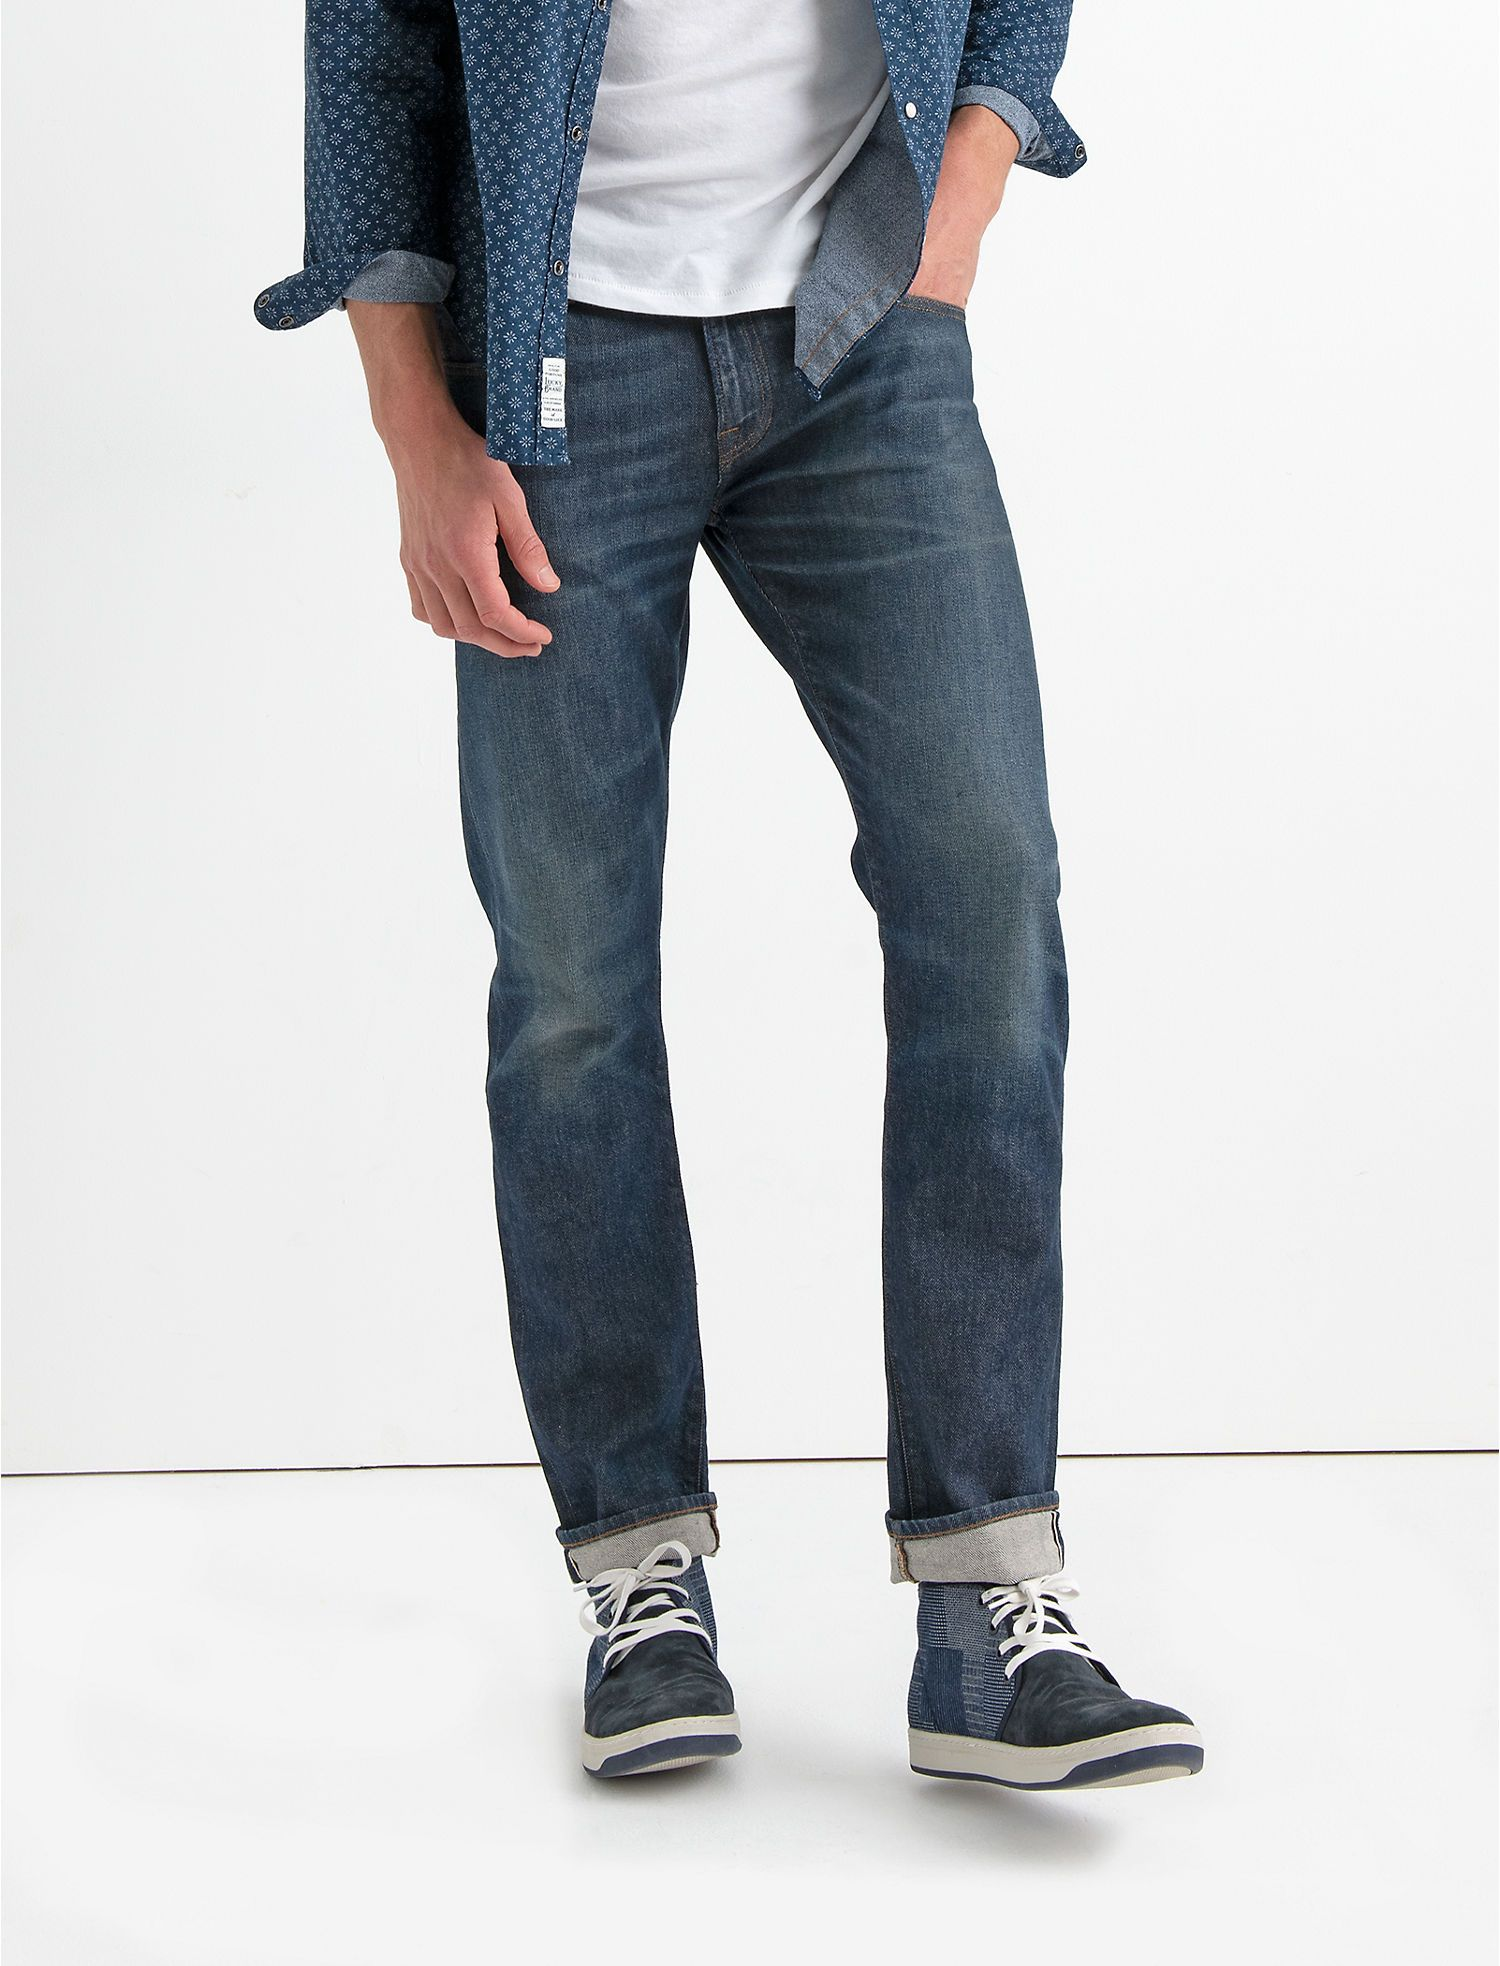 athletic fit jeans canada